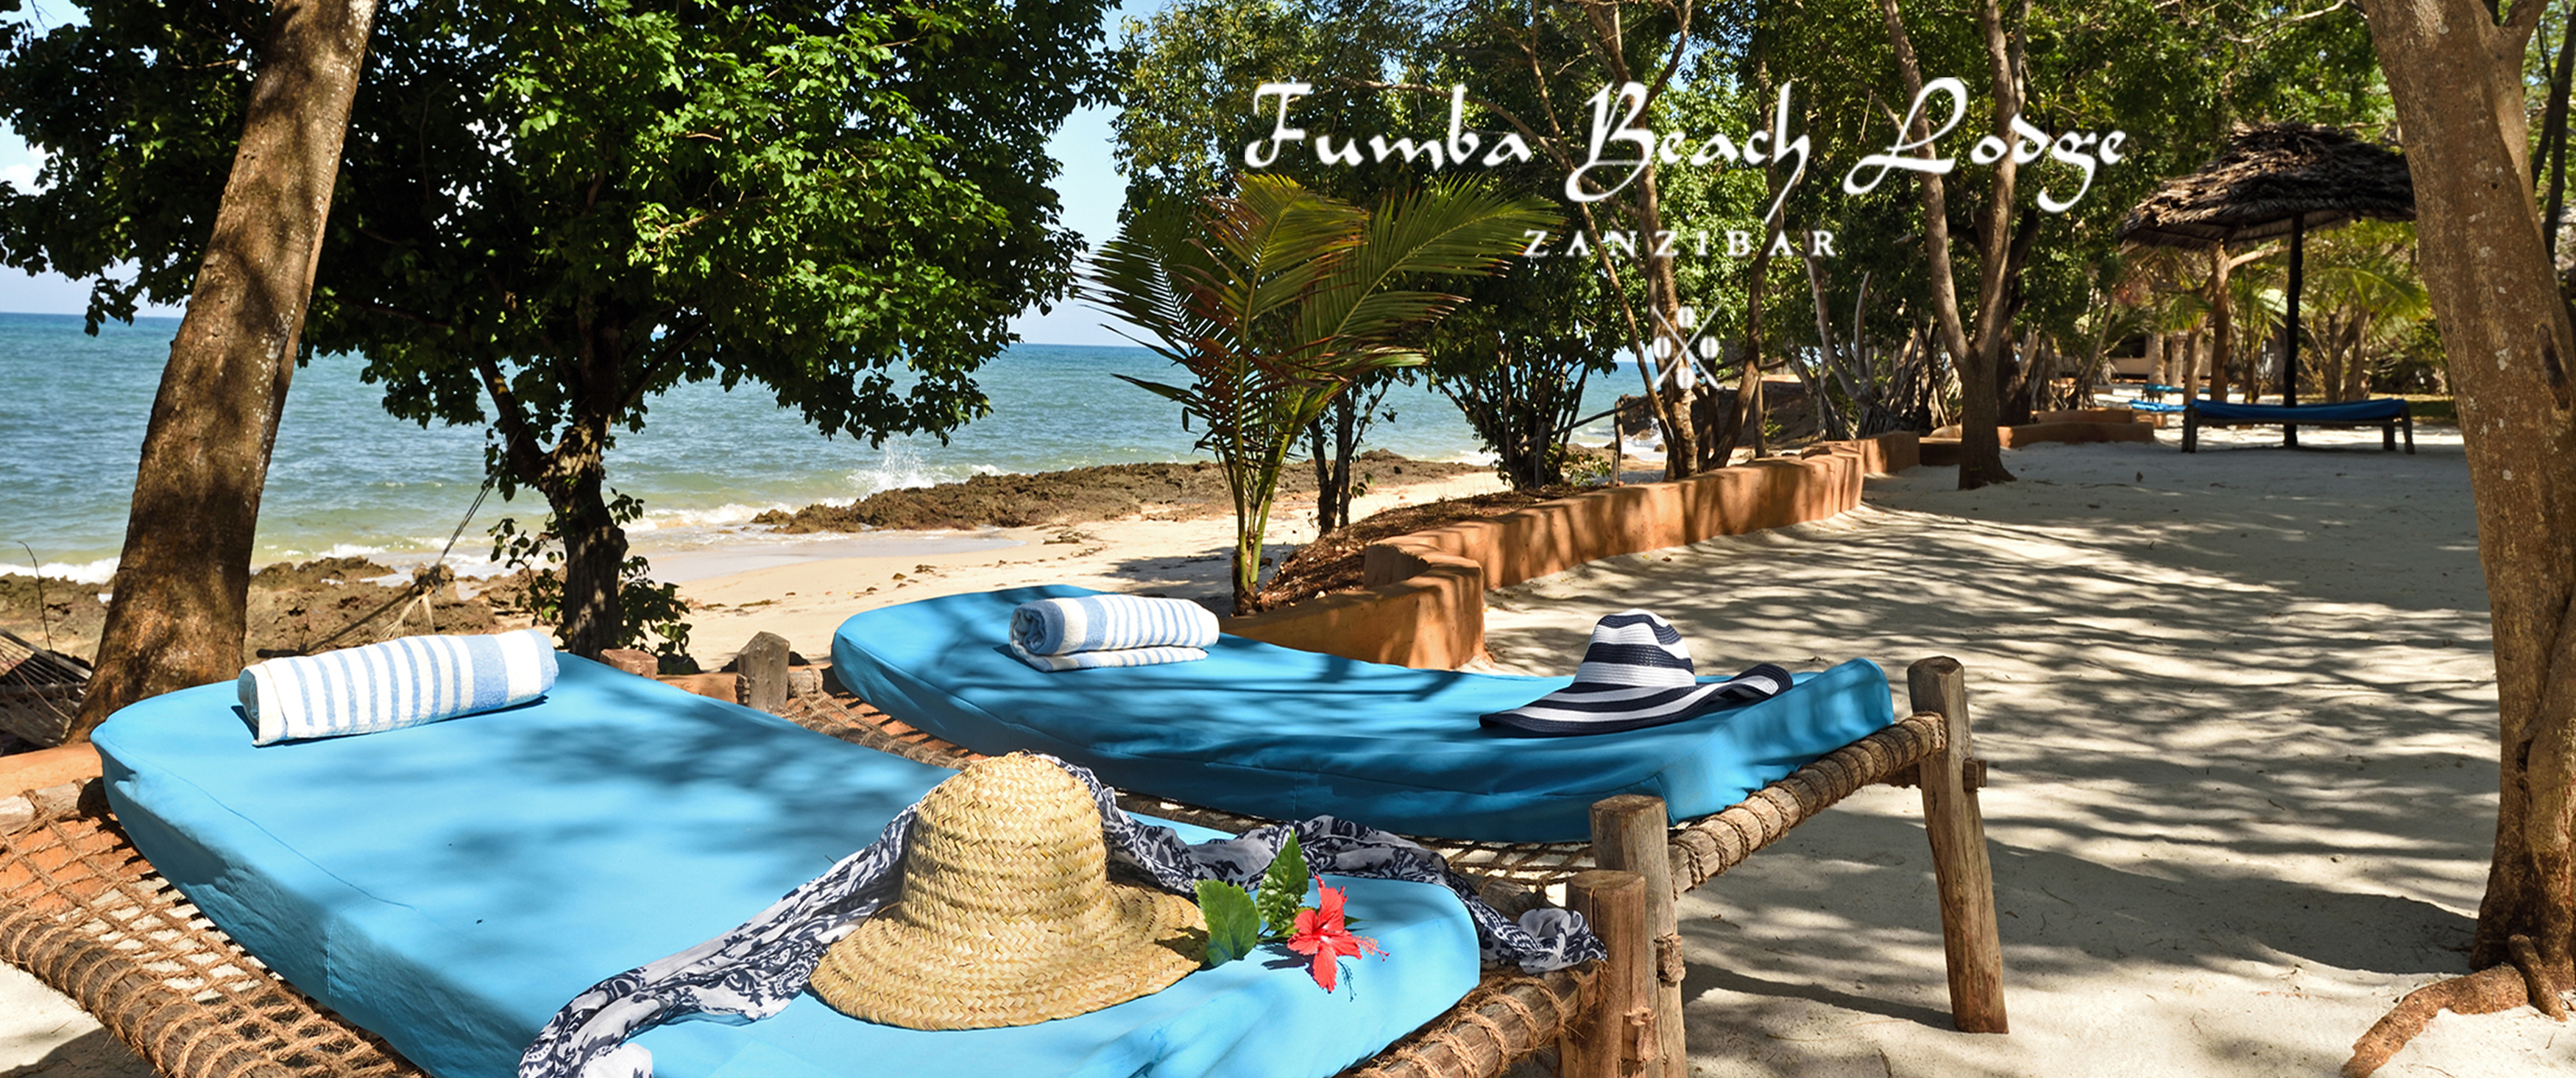 Fumba Beach Lodge Beds